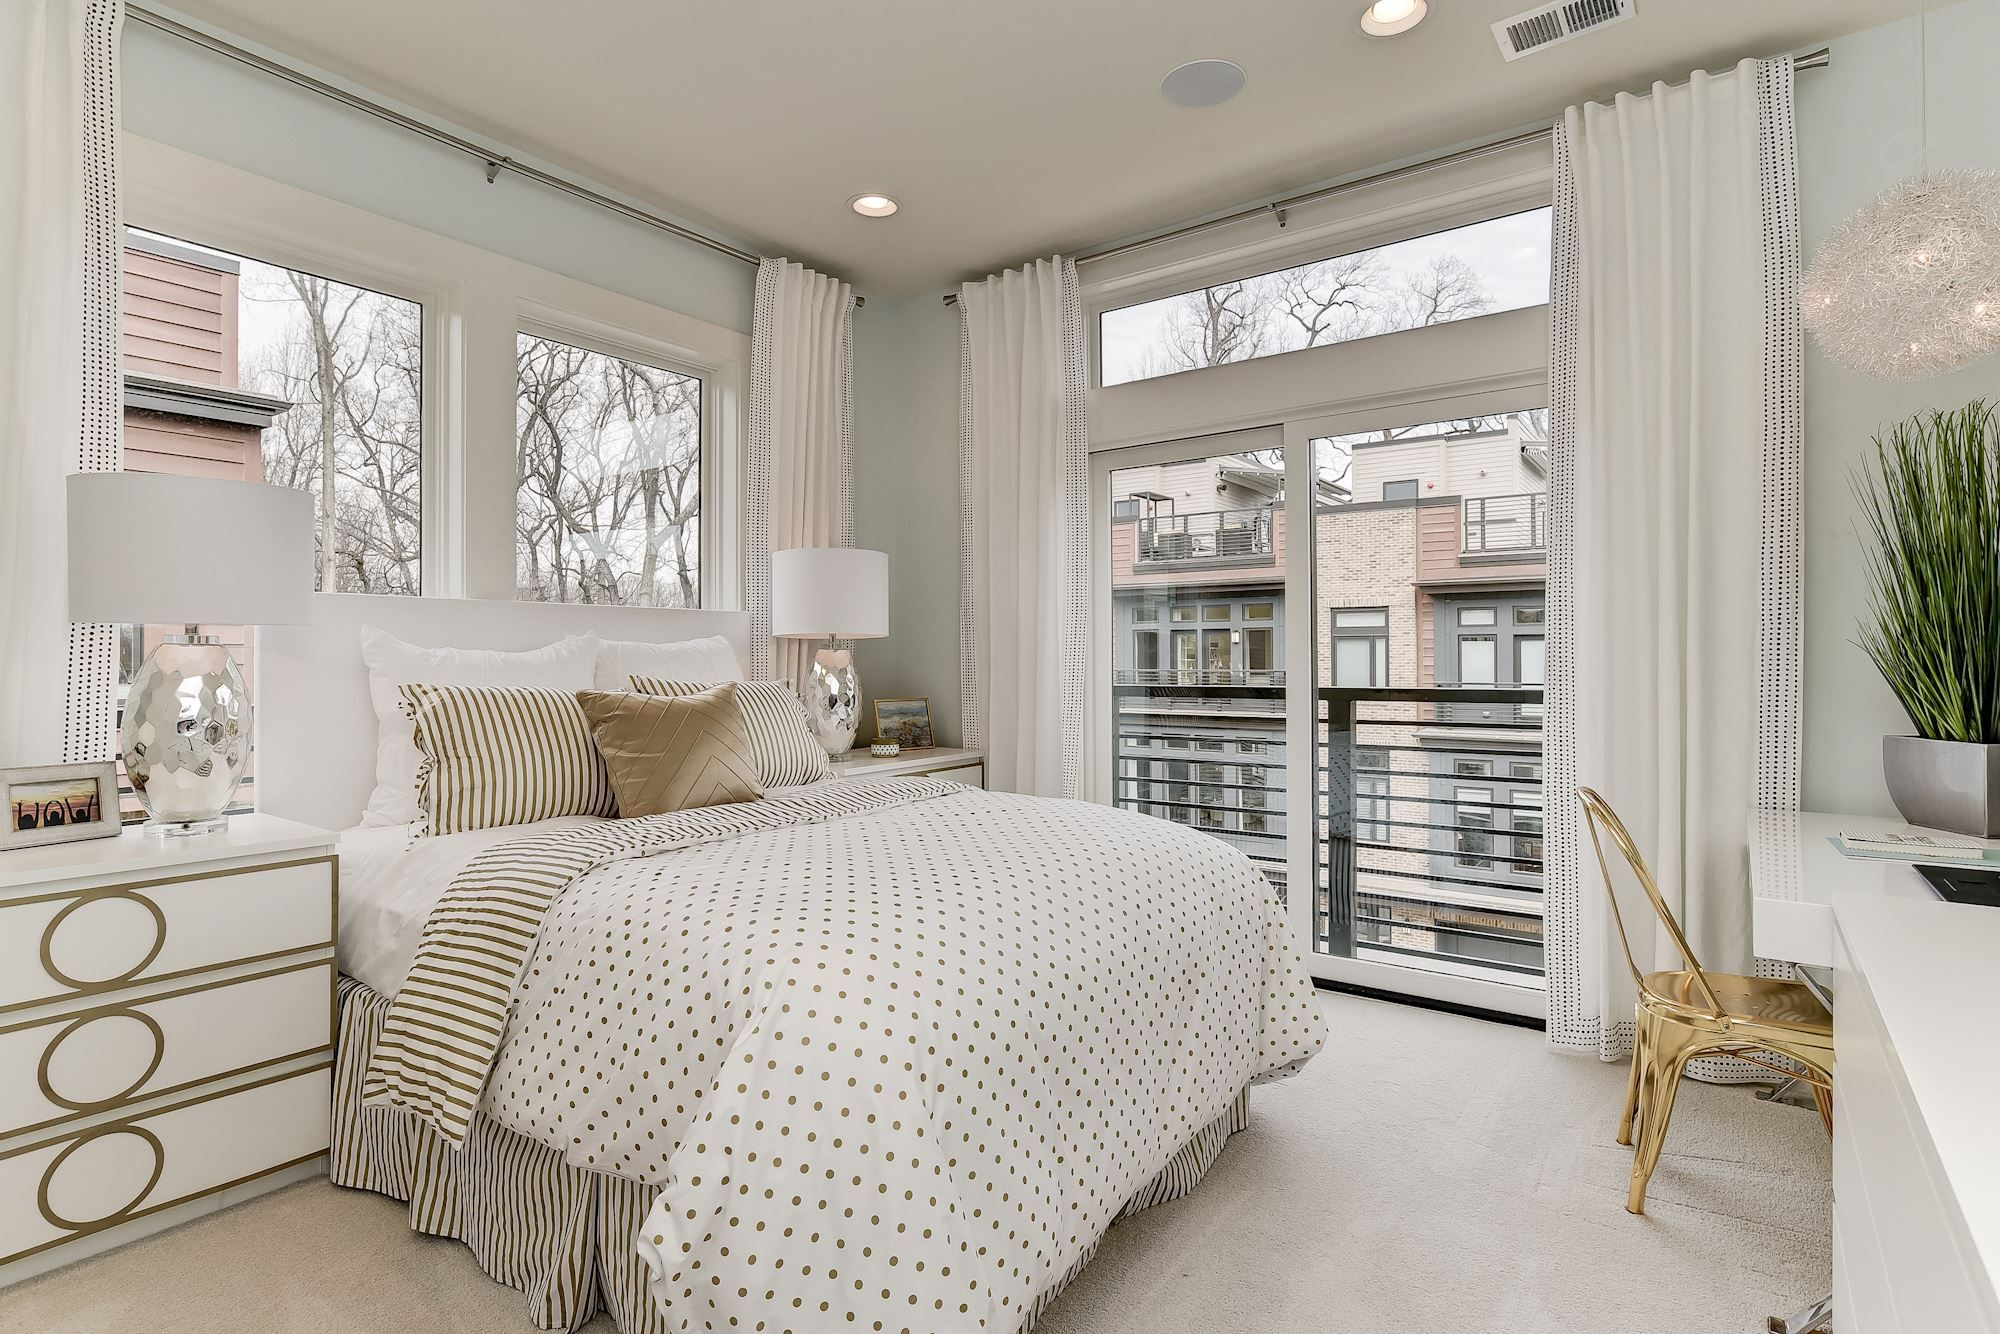 Bright Modern White Bedroom With Gold Accents In Eya S Cameron